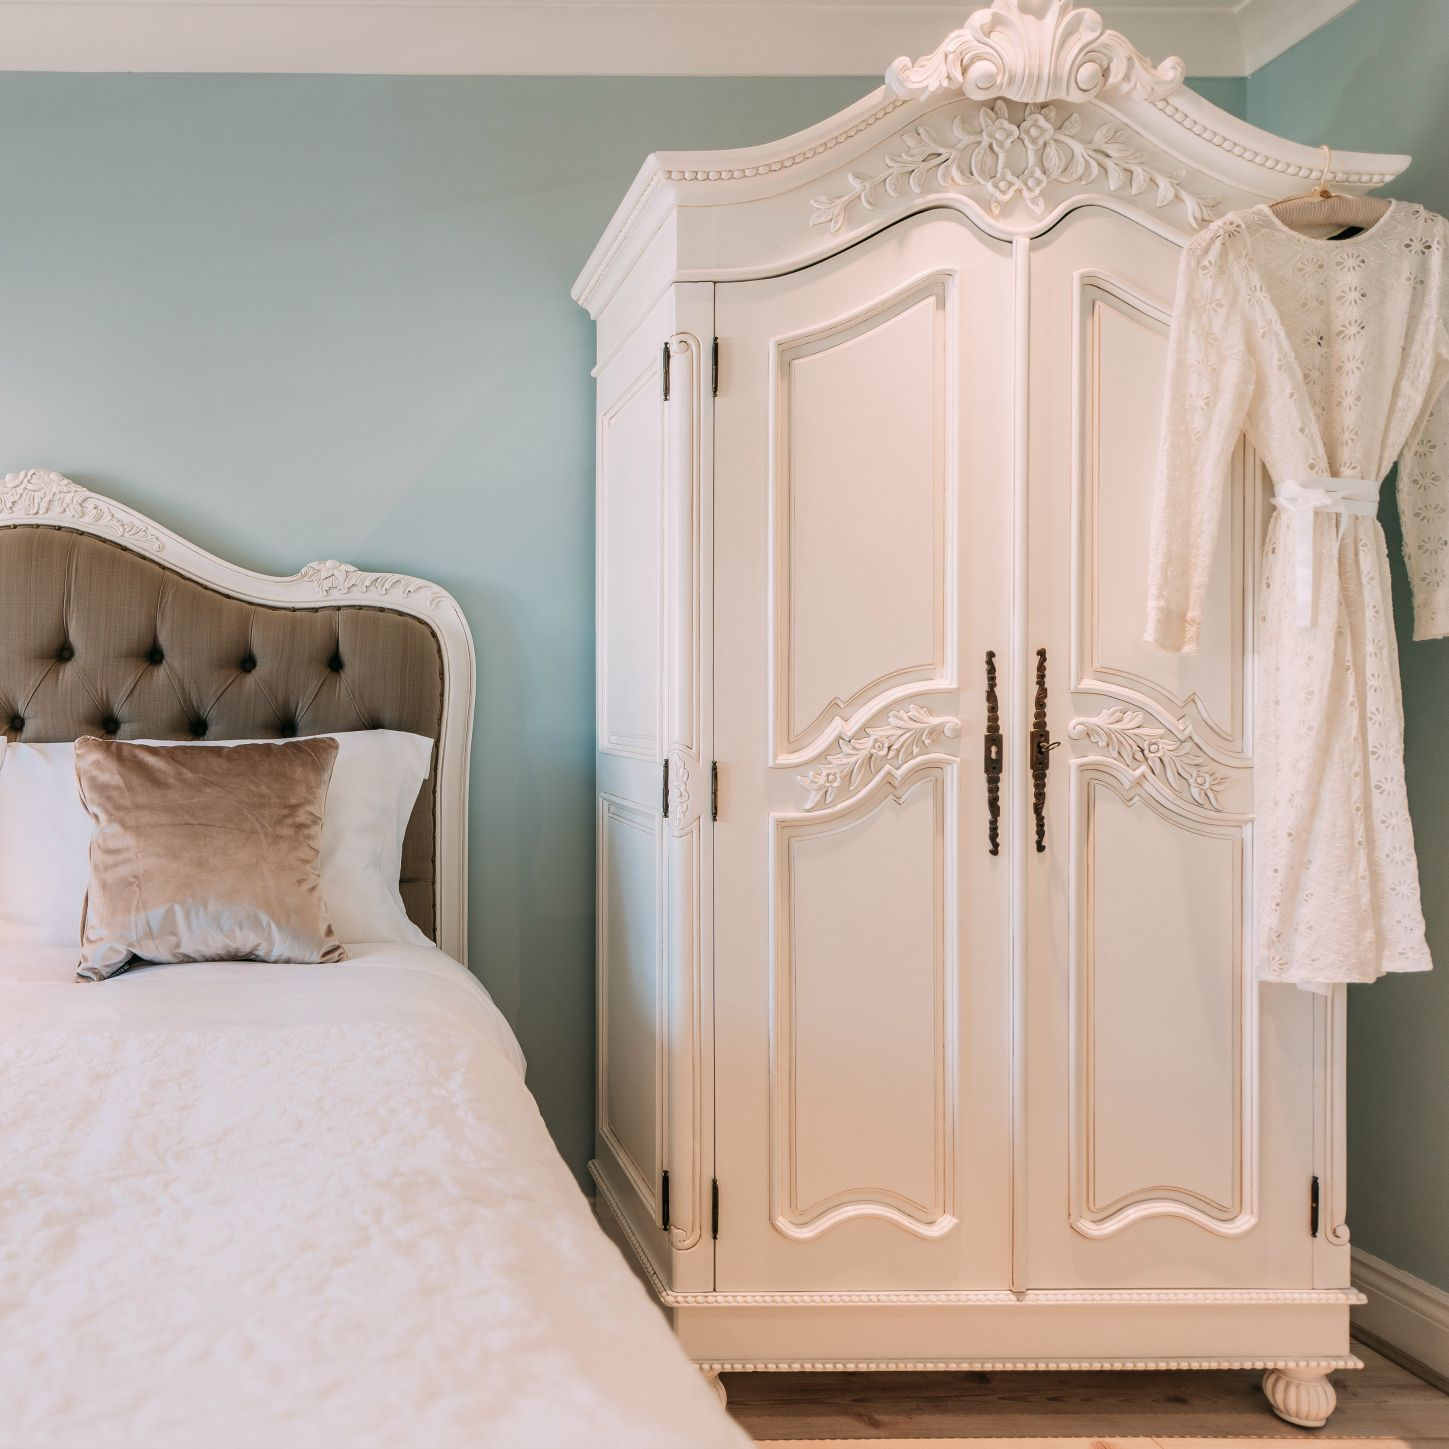 Superbe French White Hand Carved Double Armoire Wardrobe Made From Solid Wood.  Hanging Wooden Rail With